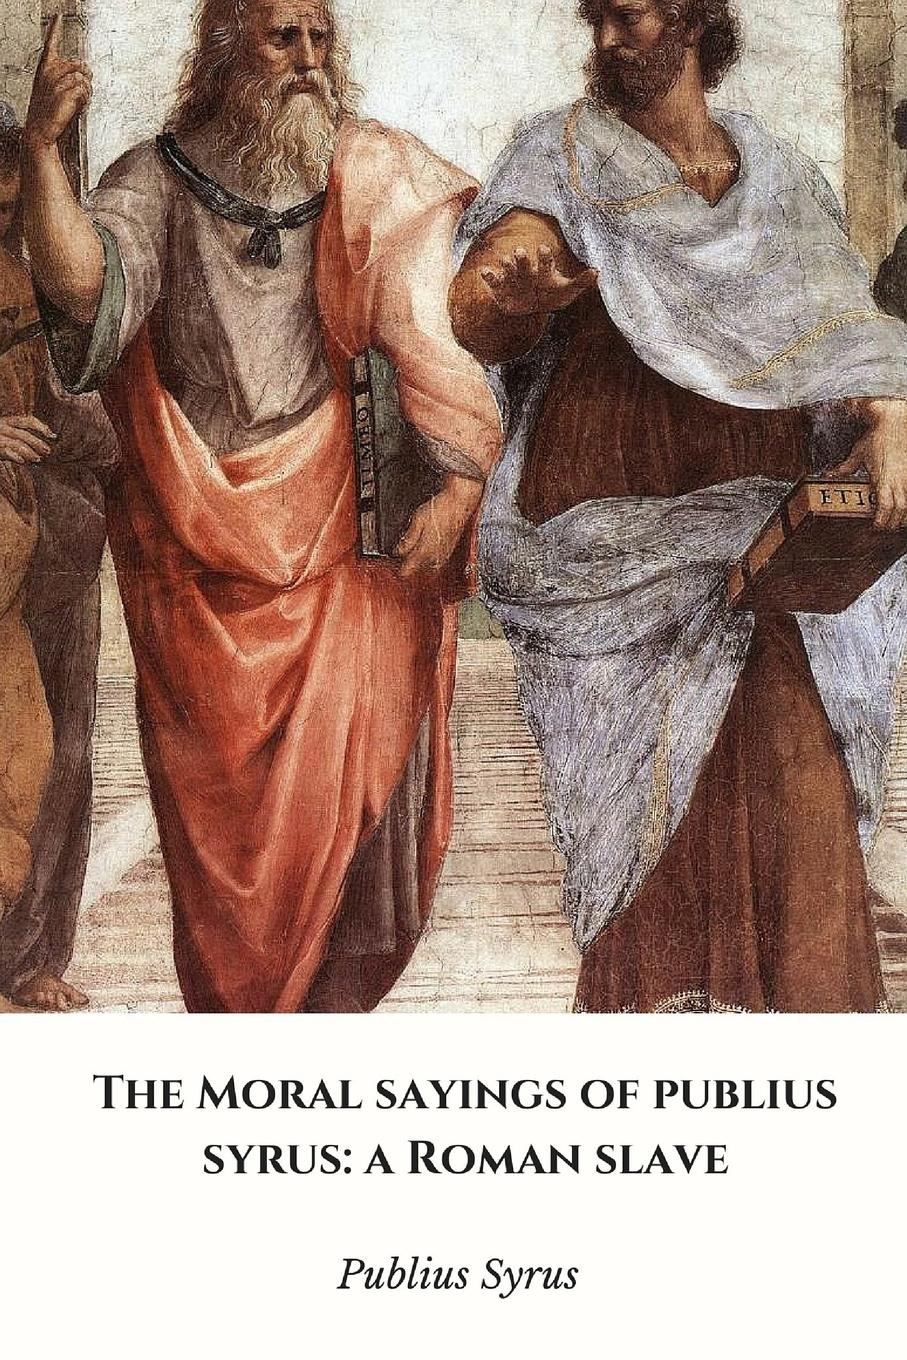 Publius Syrus The Moral Sayings of Publius Syrus. a Roman Slave oscar wilde the ballad of reading gaol a poetry